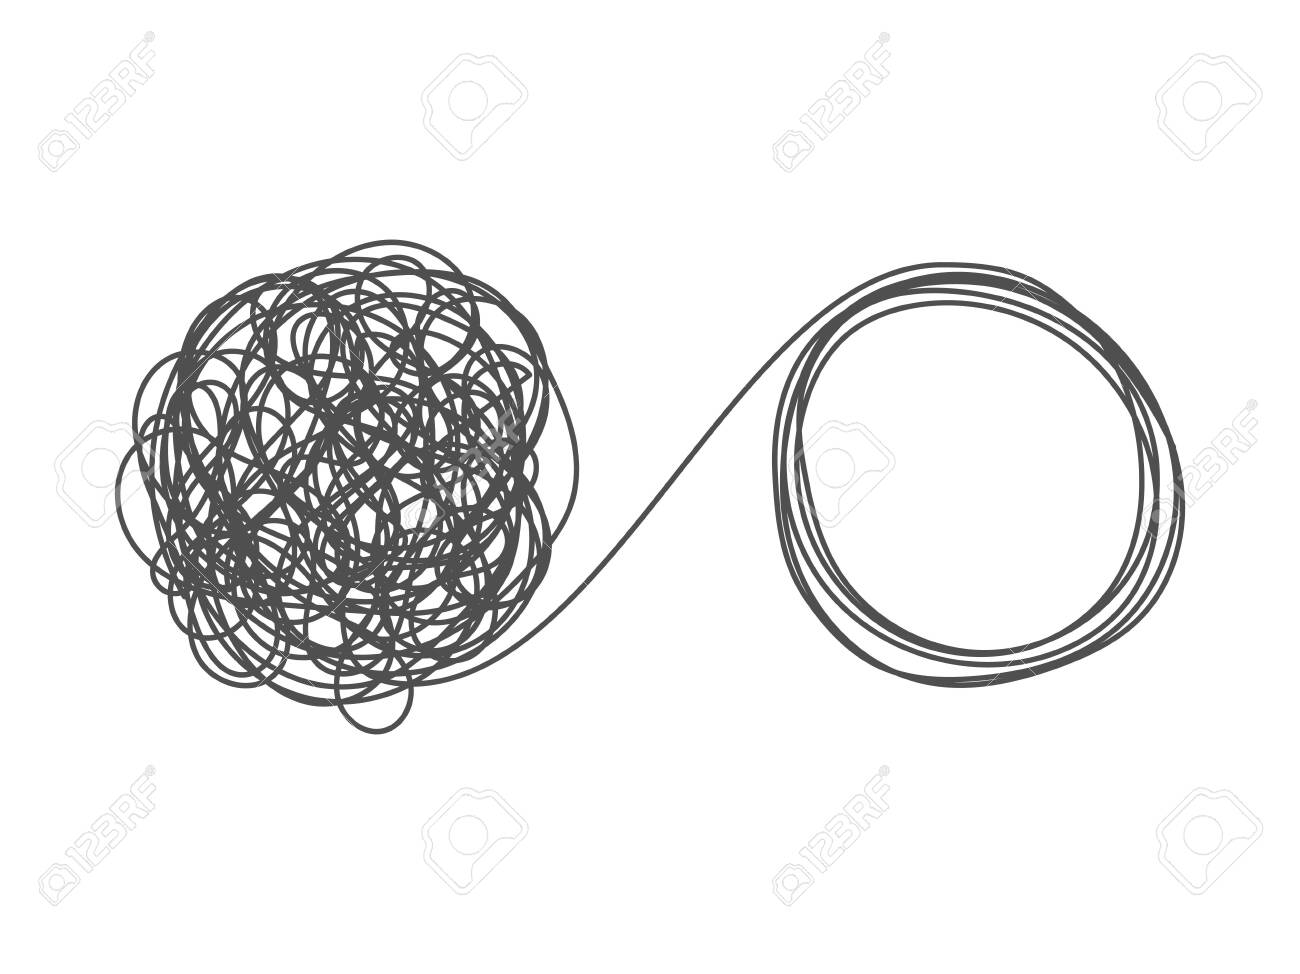 Unraveling Tangled Tangle Metaphor Of Problem Solving Difficult Stock Photo Picture And Royalty Free Image Image 126370657